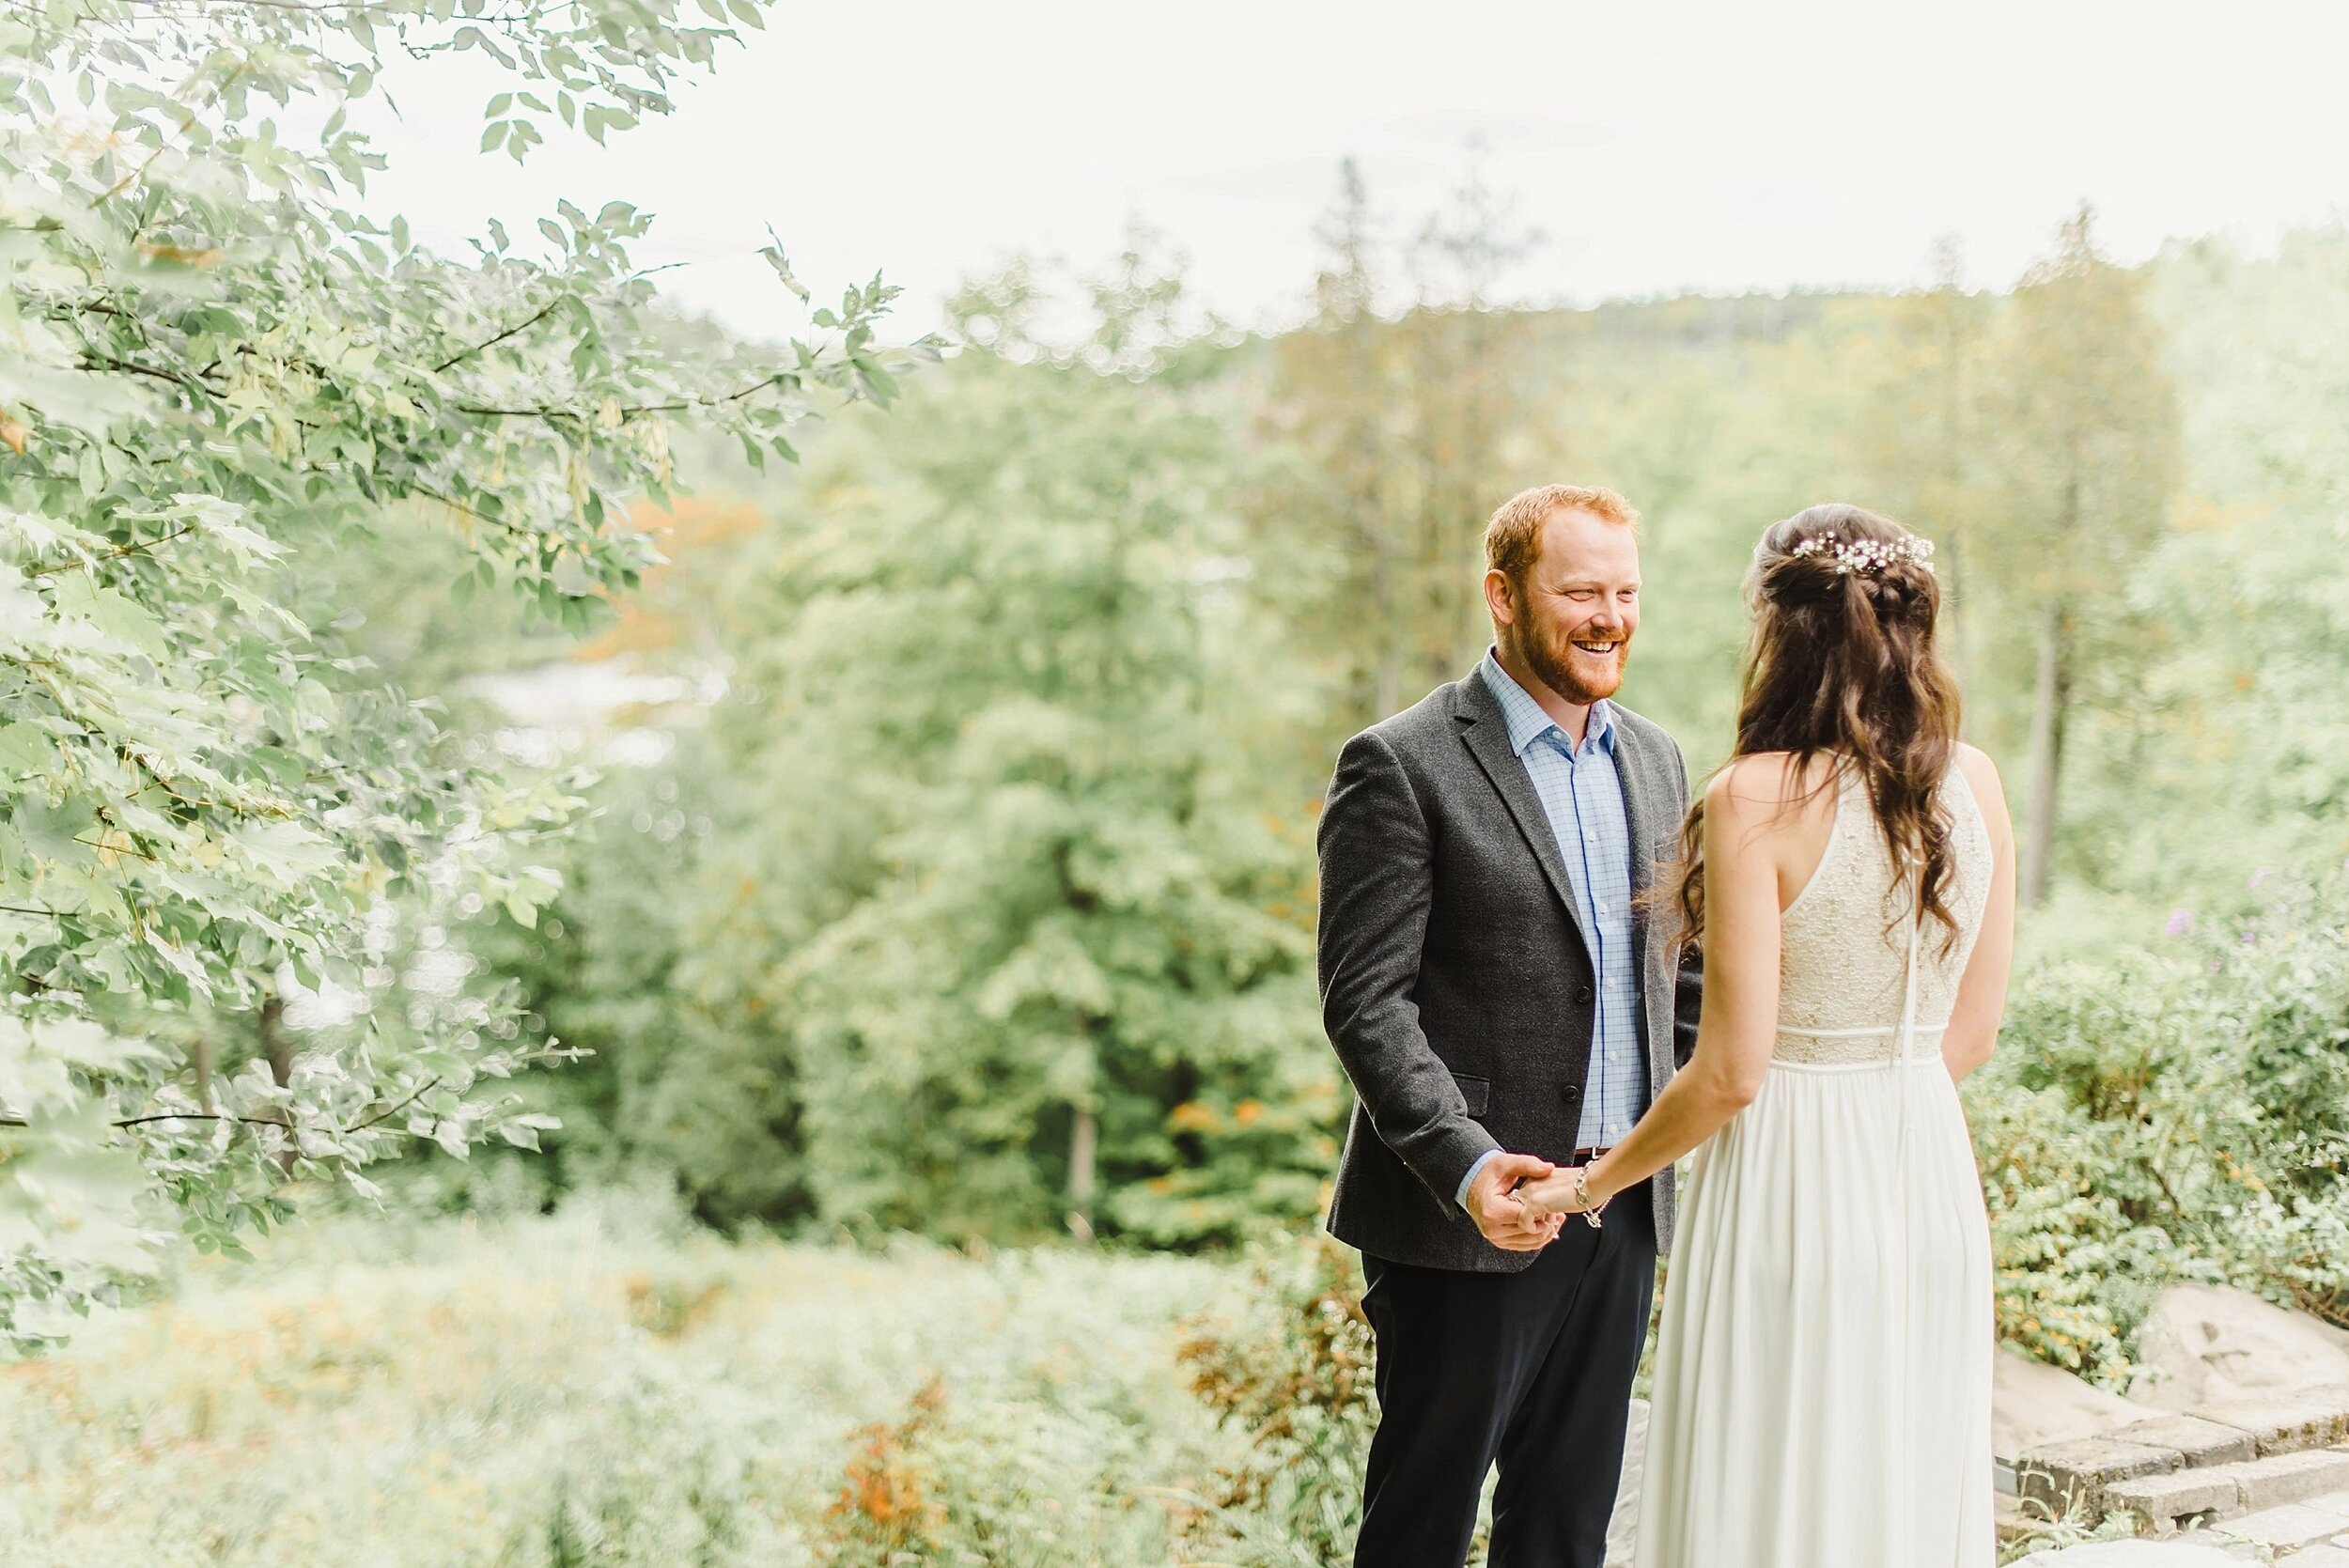 light airy indie fine art ottawa wedding photographer | Ali and Batoul Photography_1196.jpg